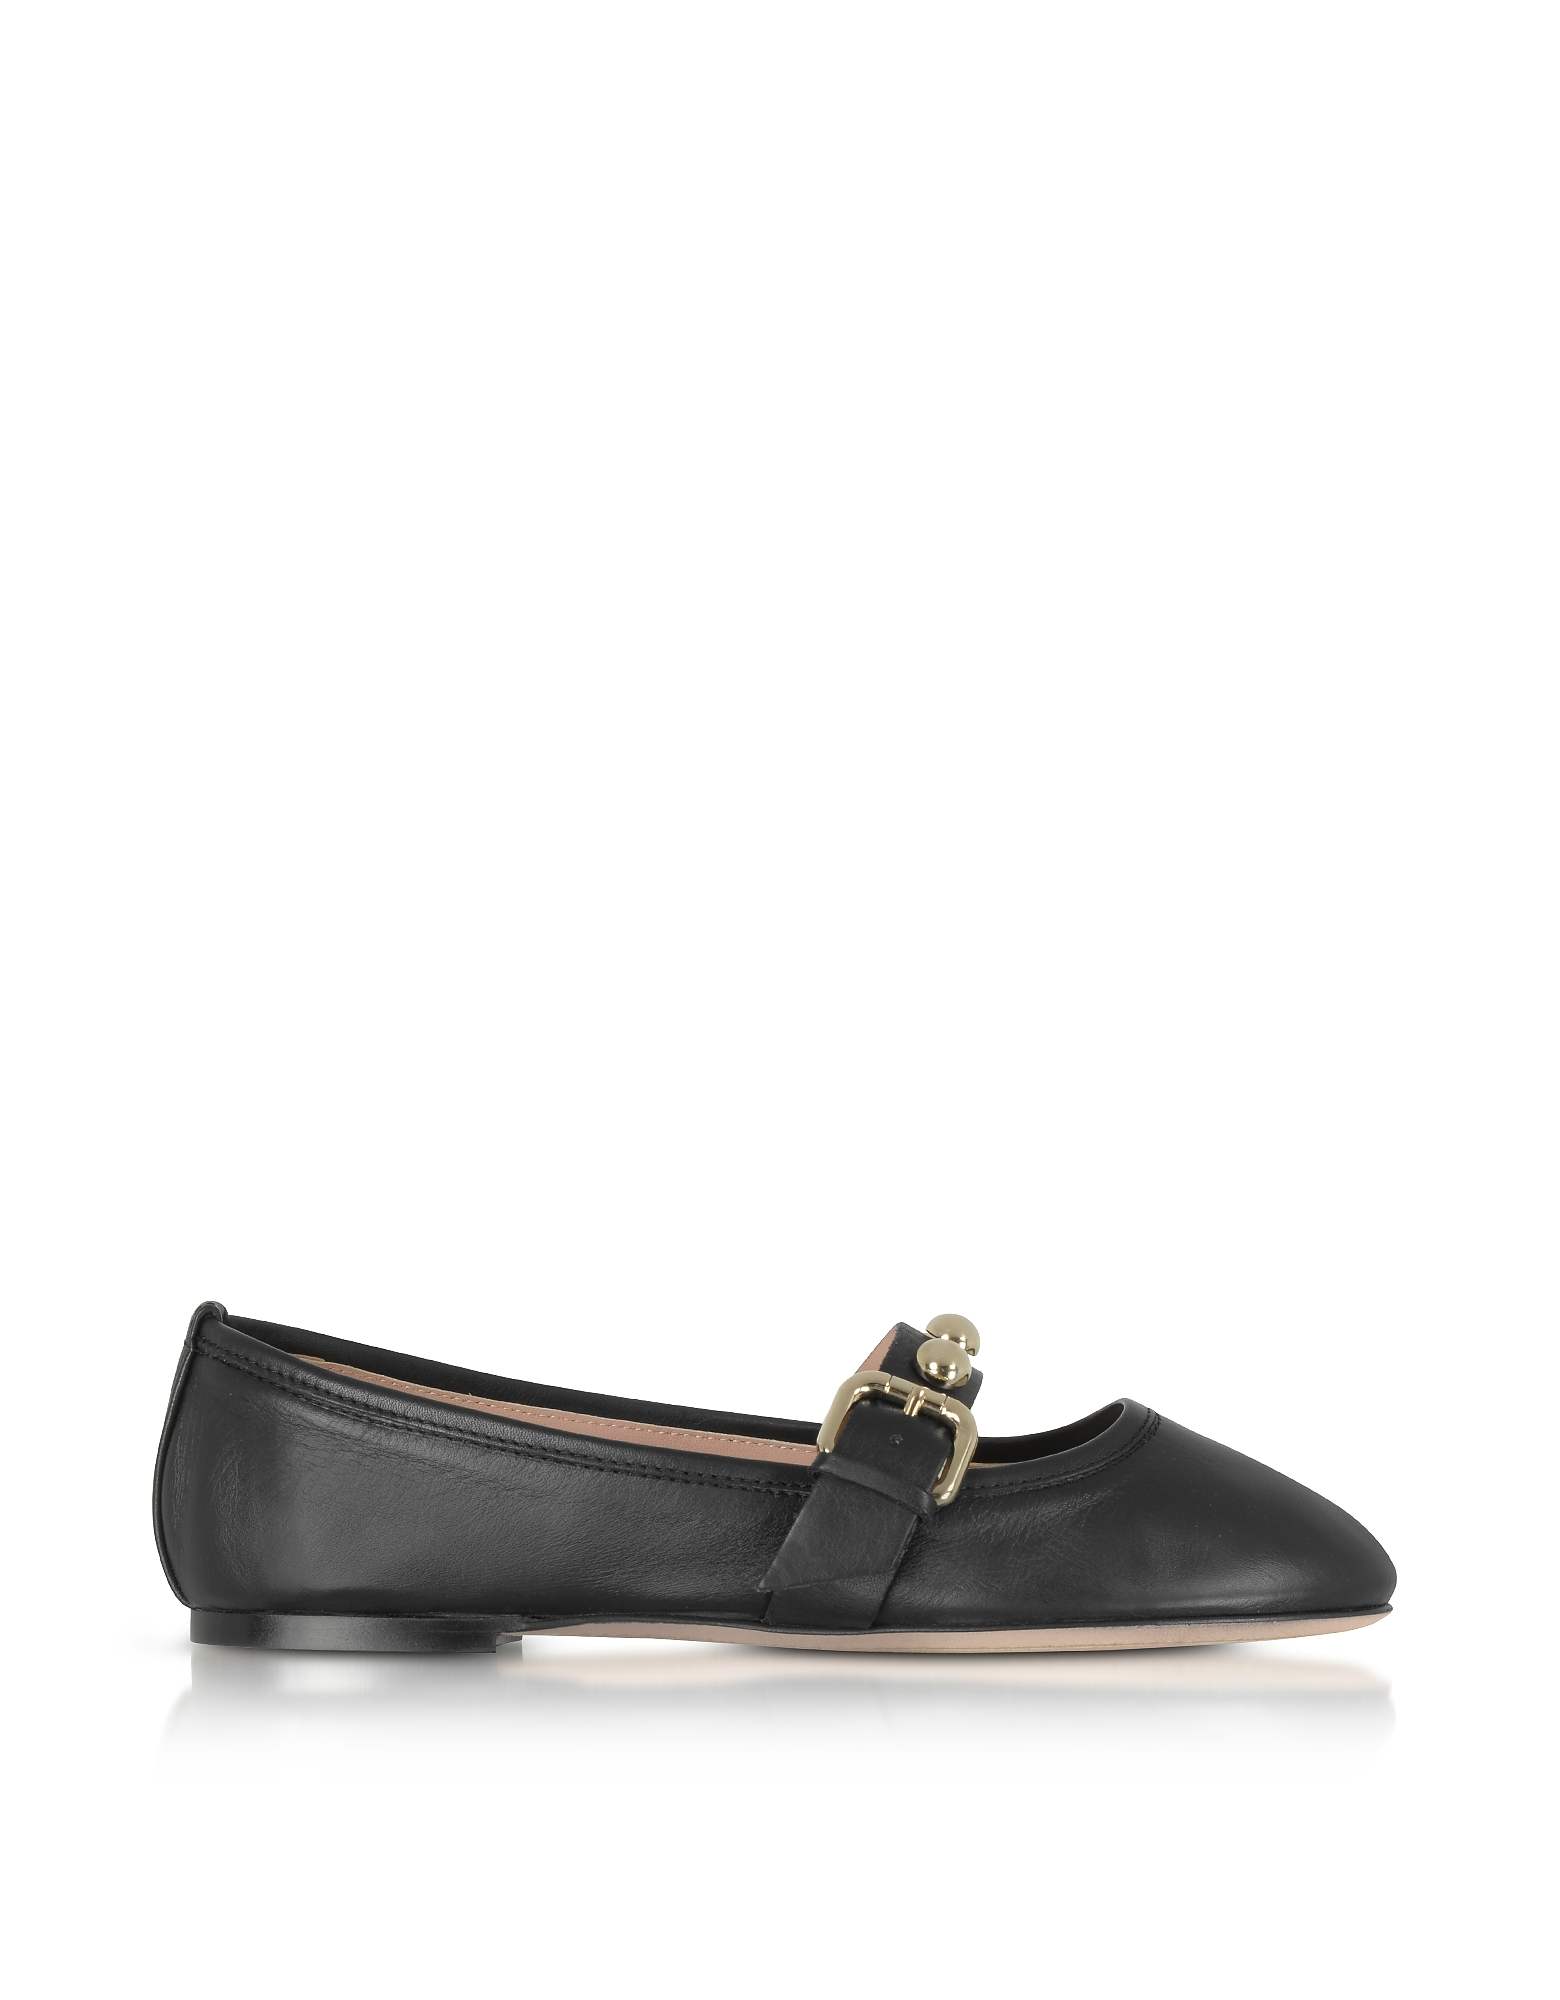 RED Valentino Shoes, Black Leather Flat Ballerinas w/Buckle and Studs